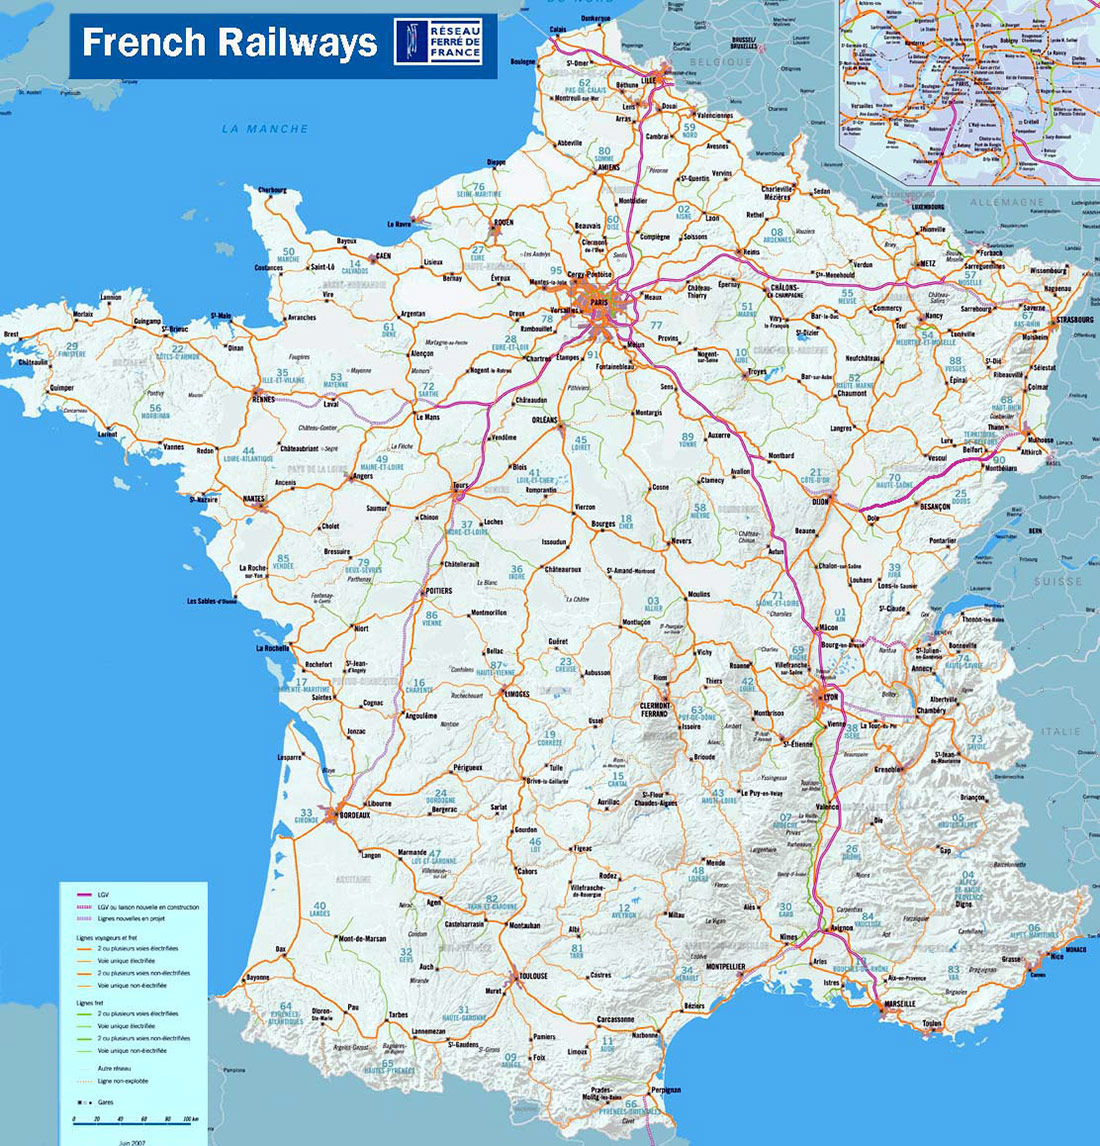 Fench Railways large map